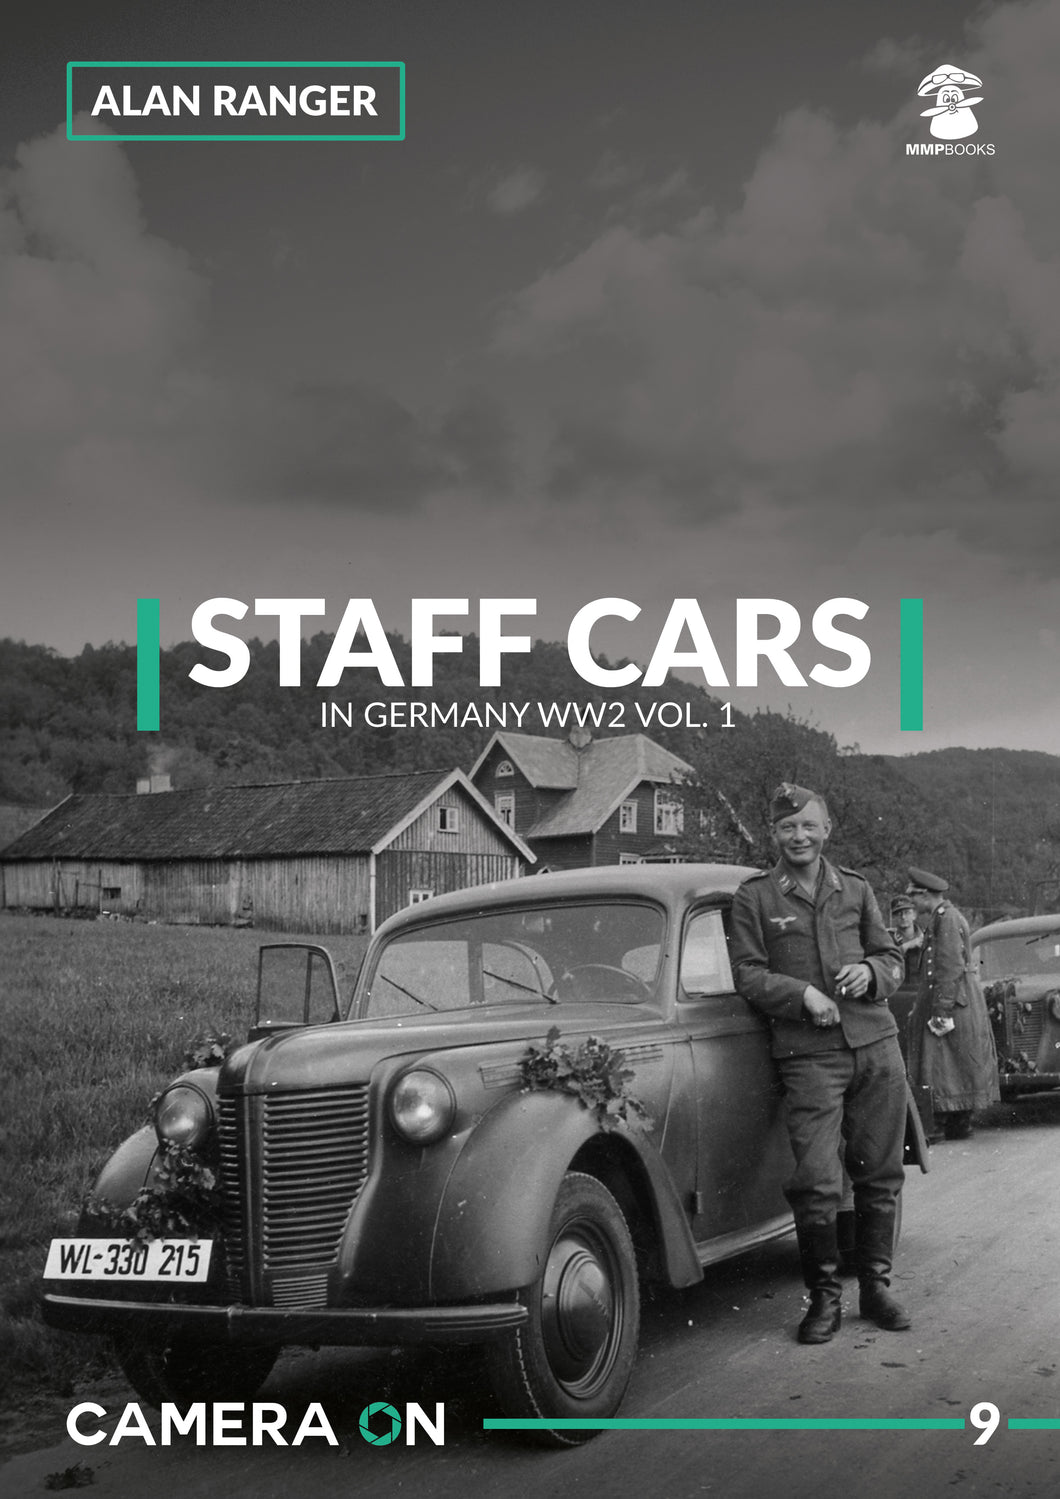 Staff Cars - In Germany WW2 Vol 1 - The Tank Museum